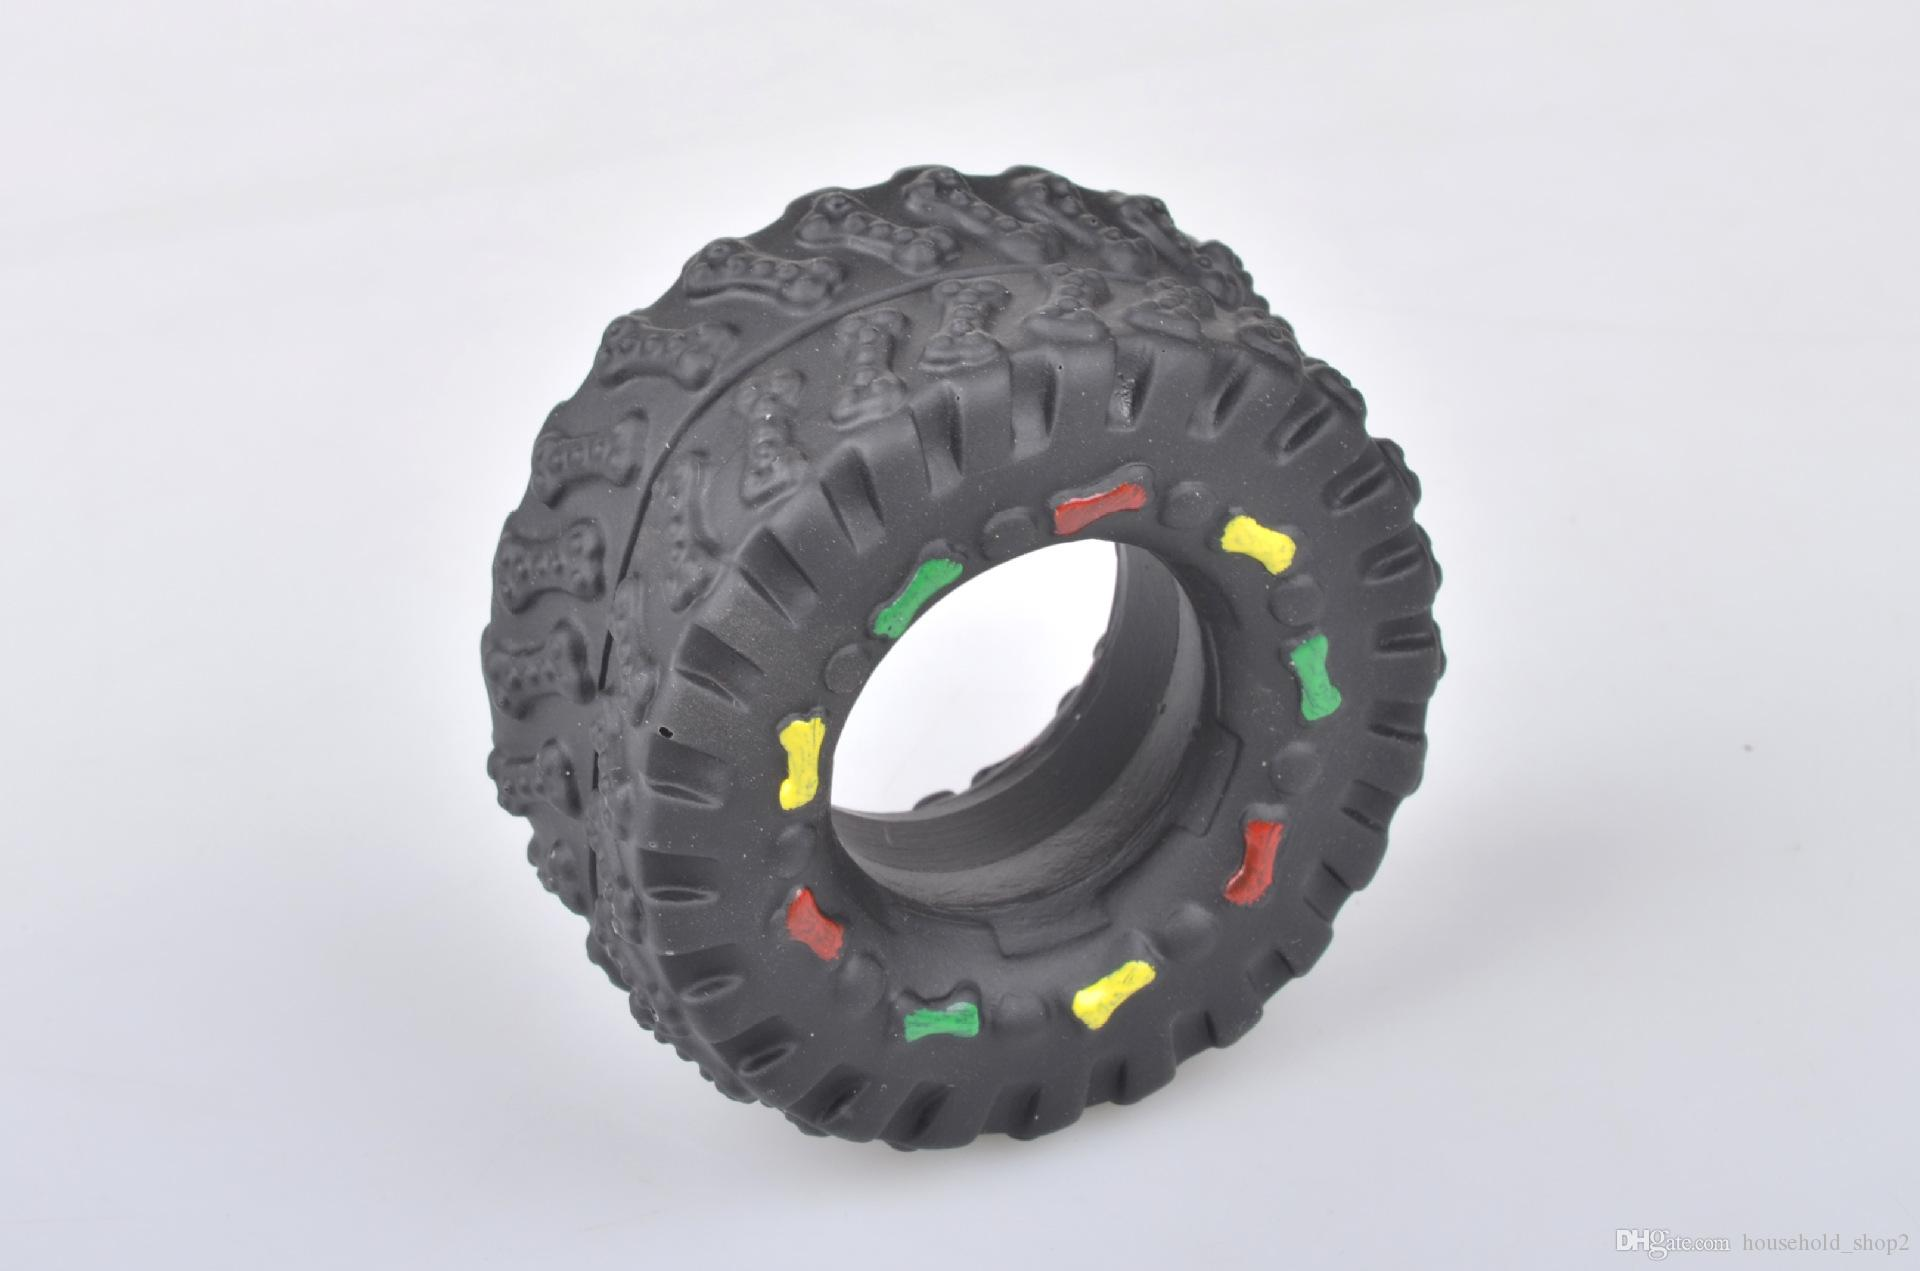 Pet Dog Cat Animal Chews Squeaky Sound Rubber Tire Shape Dogs Toy Teeth Bite Resistant Tire Pets Toys